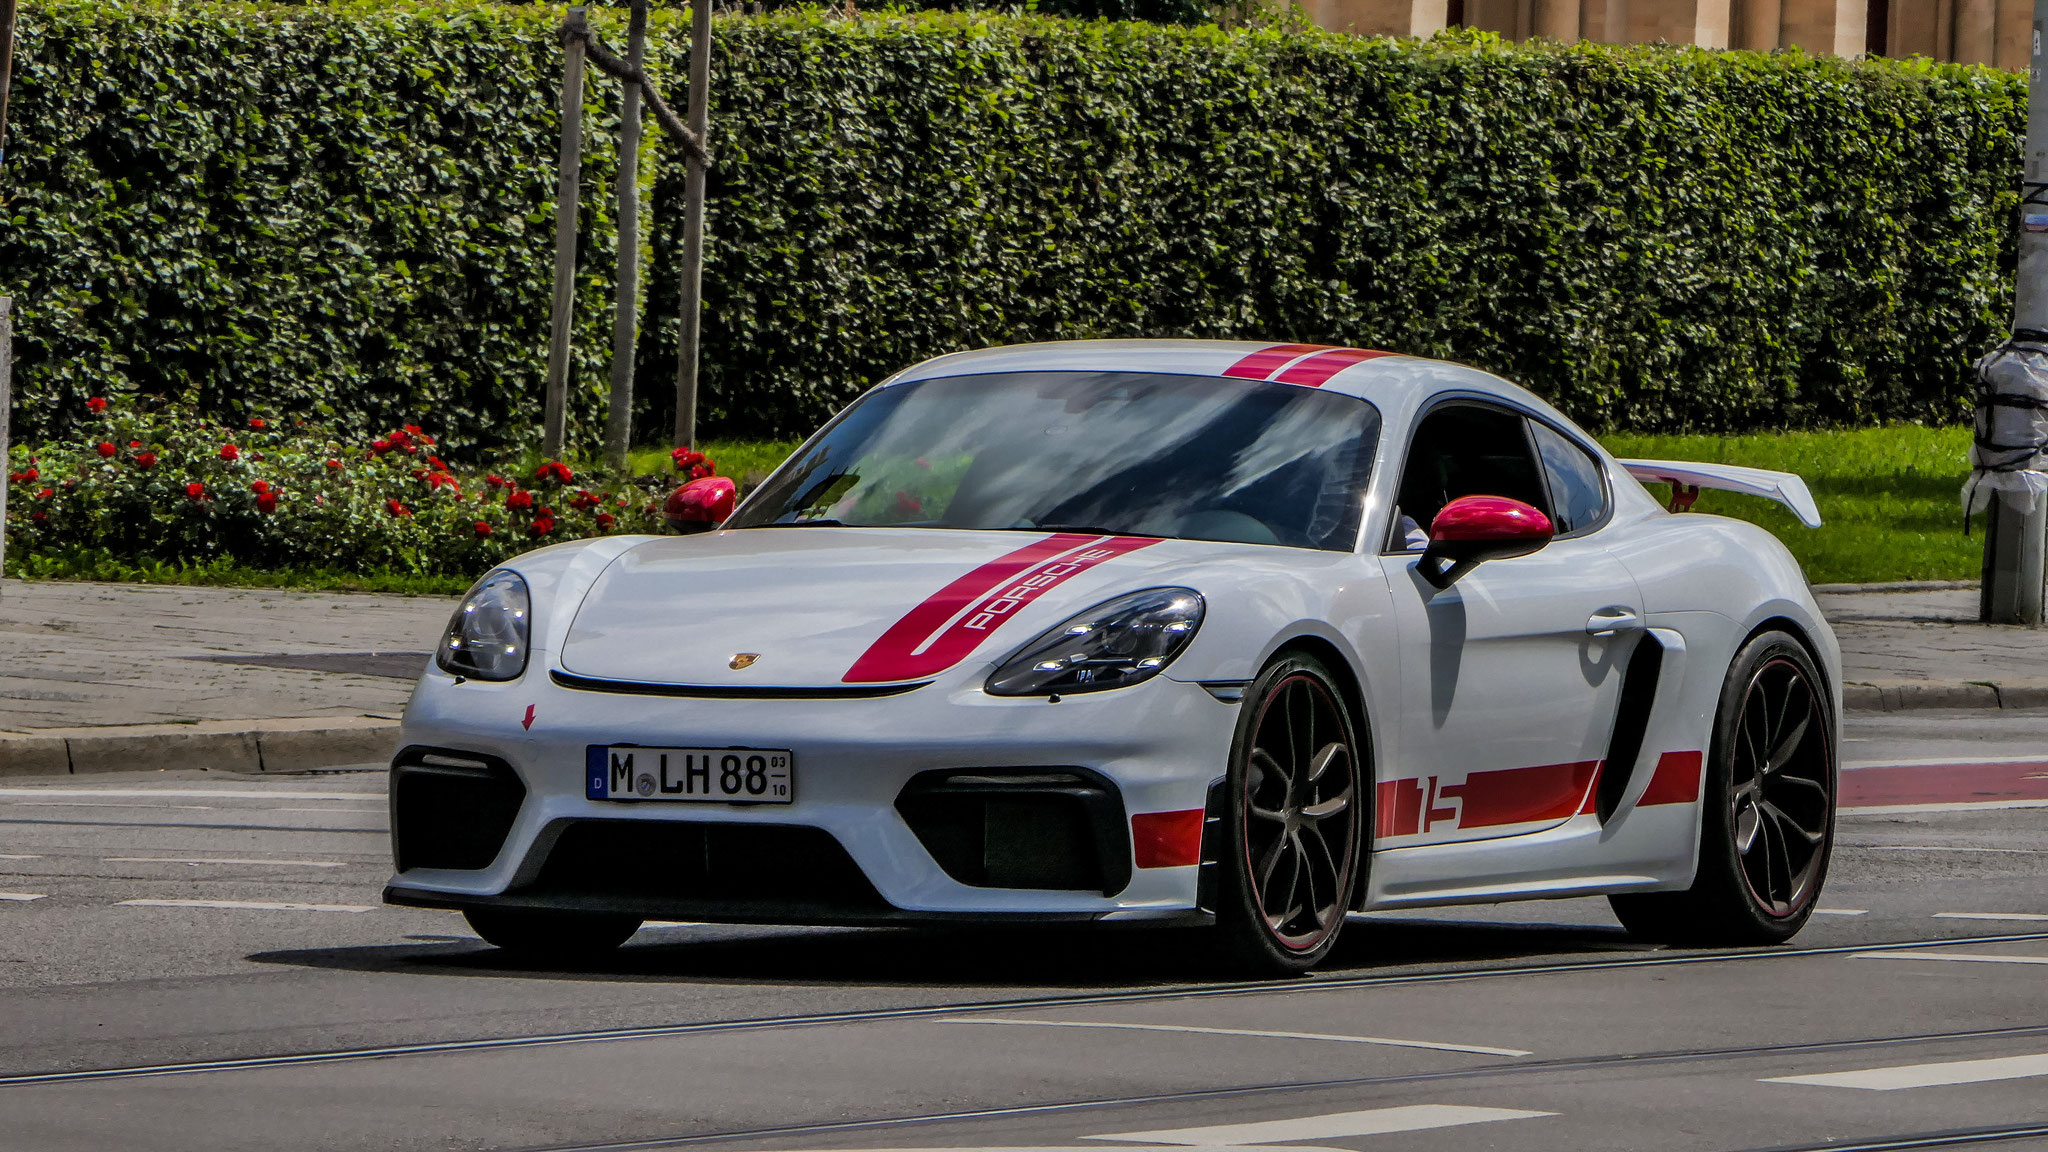 Porsche Cayman GT4 Sports Cup Edition - M-LH-88